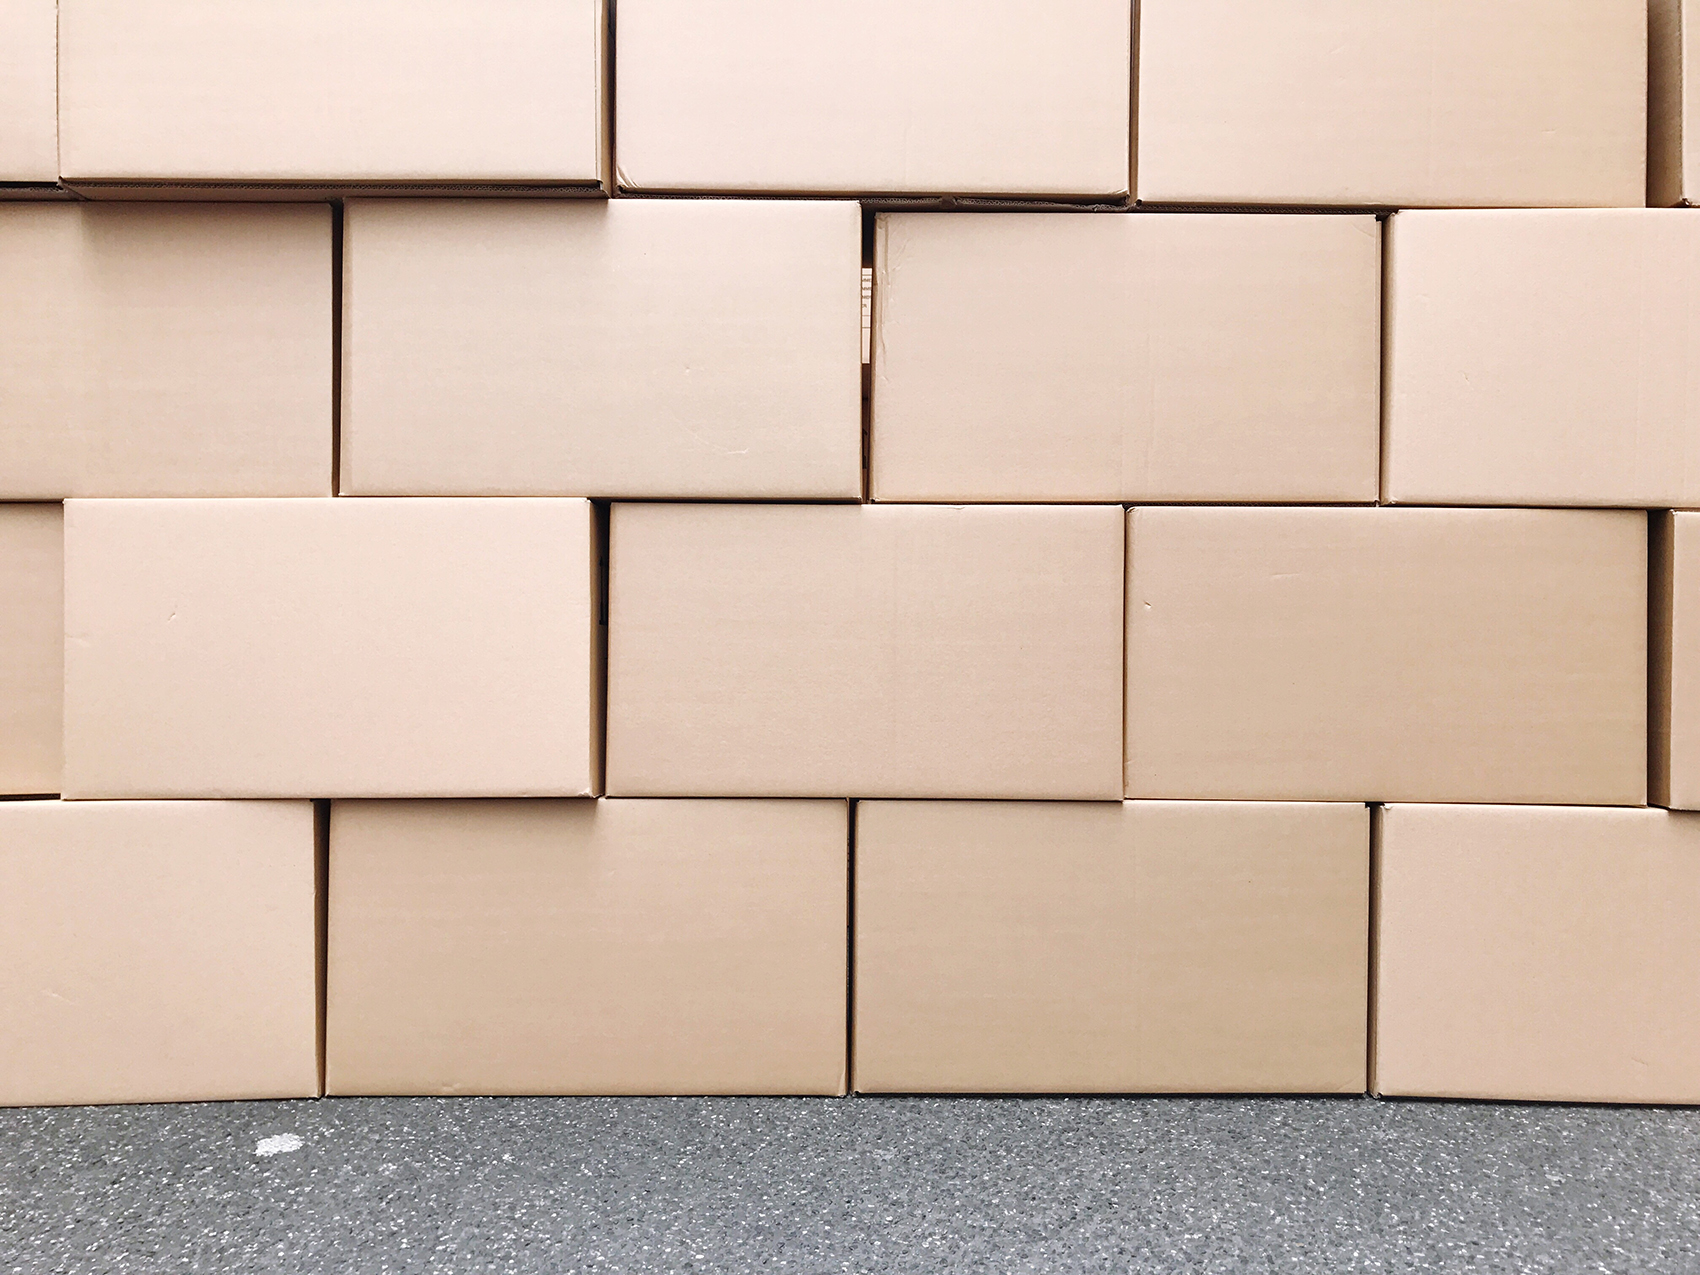 """The Problem: """"I Buy Boxes and Bins, But I Don't Know What to Do With Them"""""""